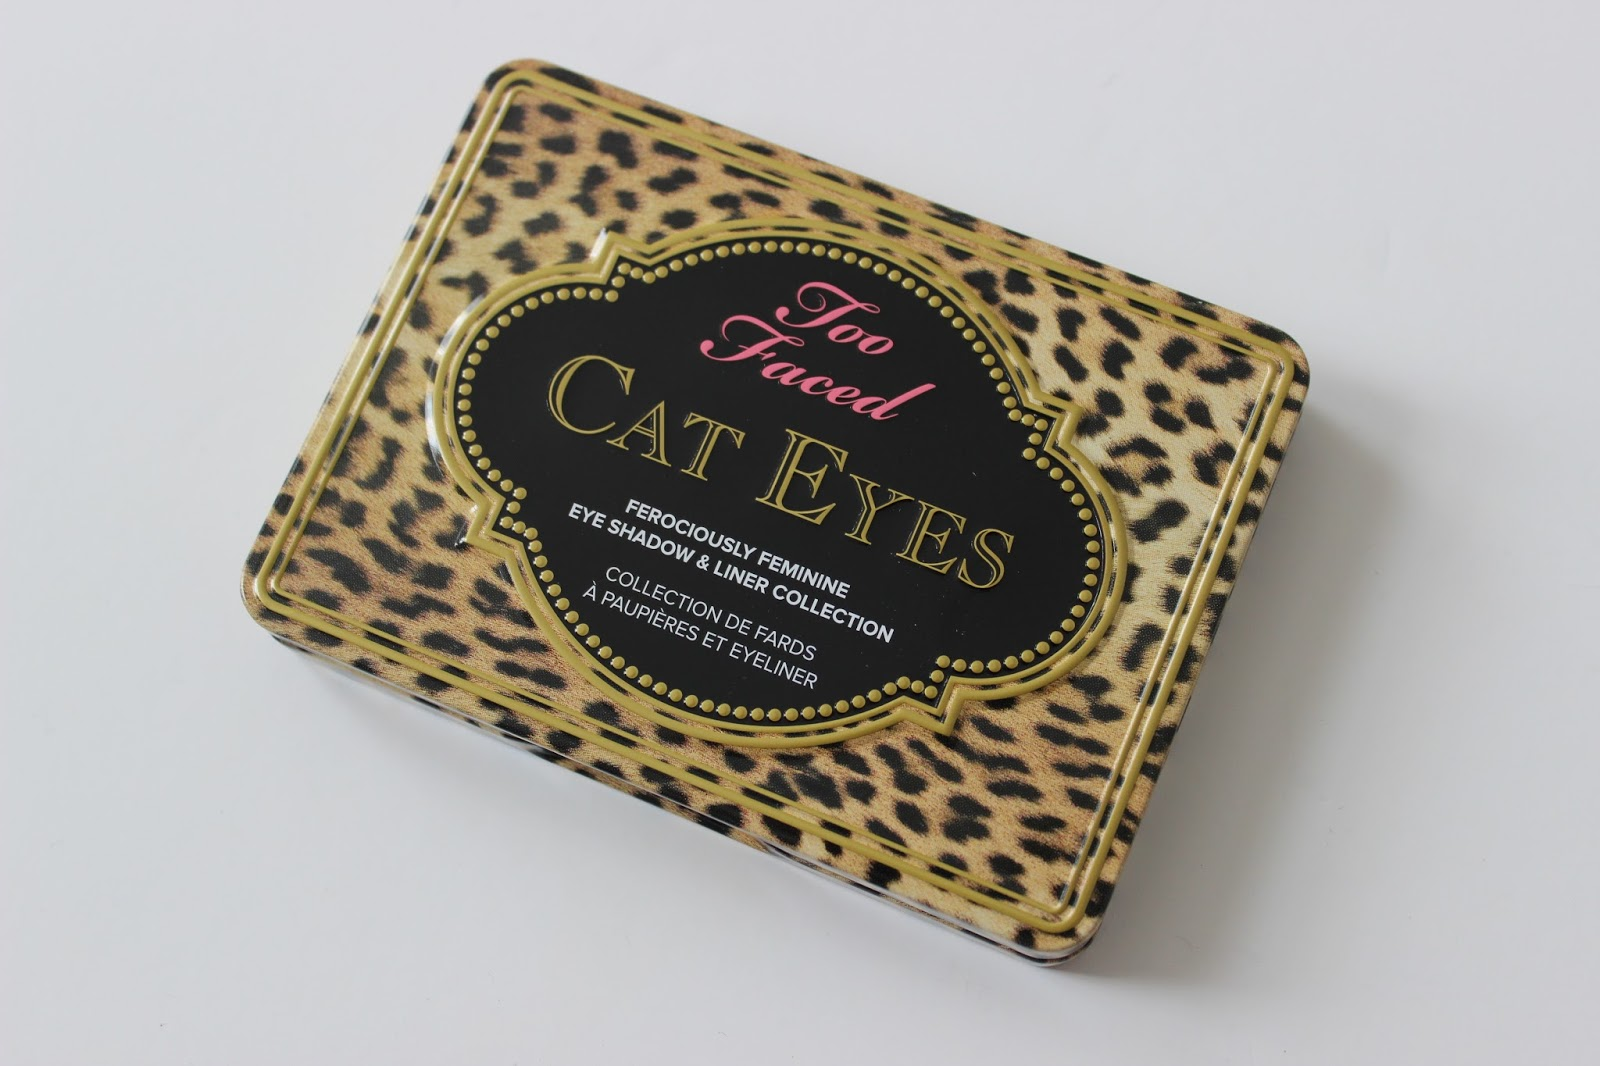 Too Faced Cat Eyes shadow palette tin